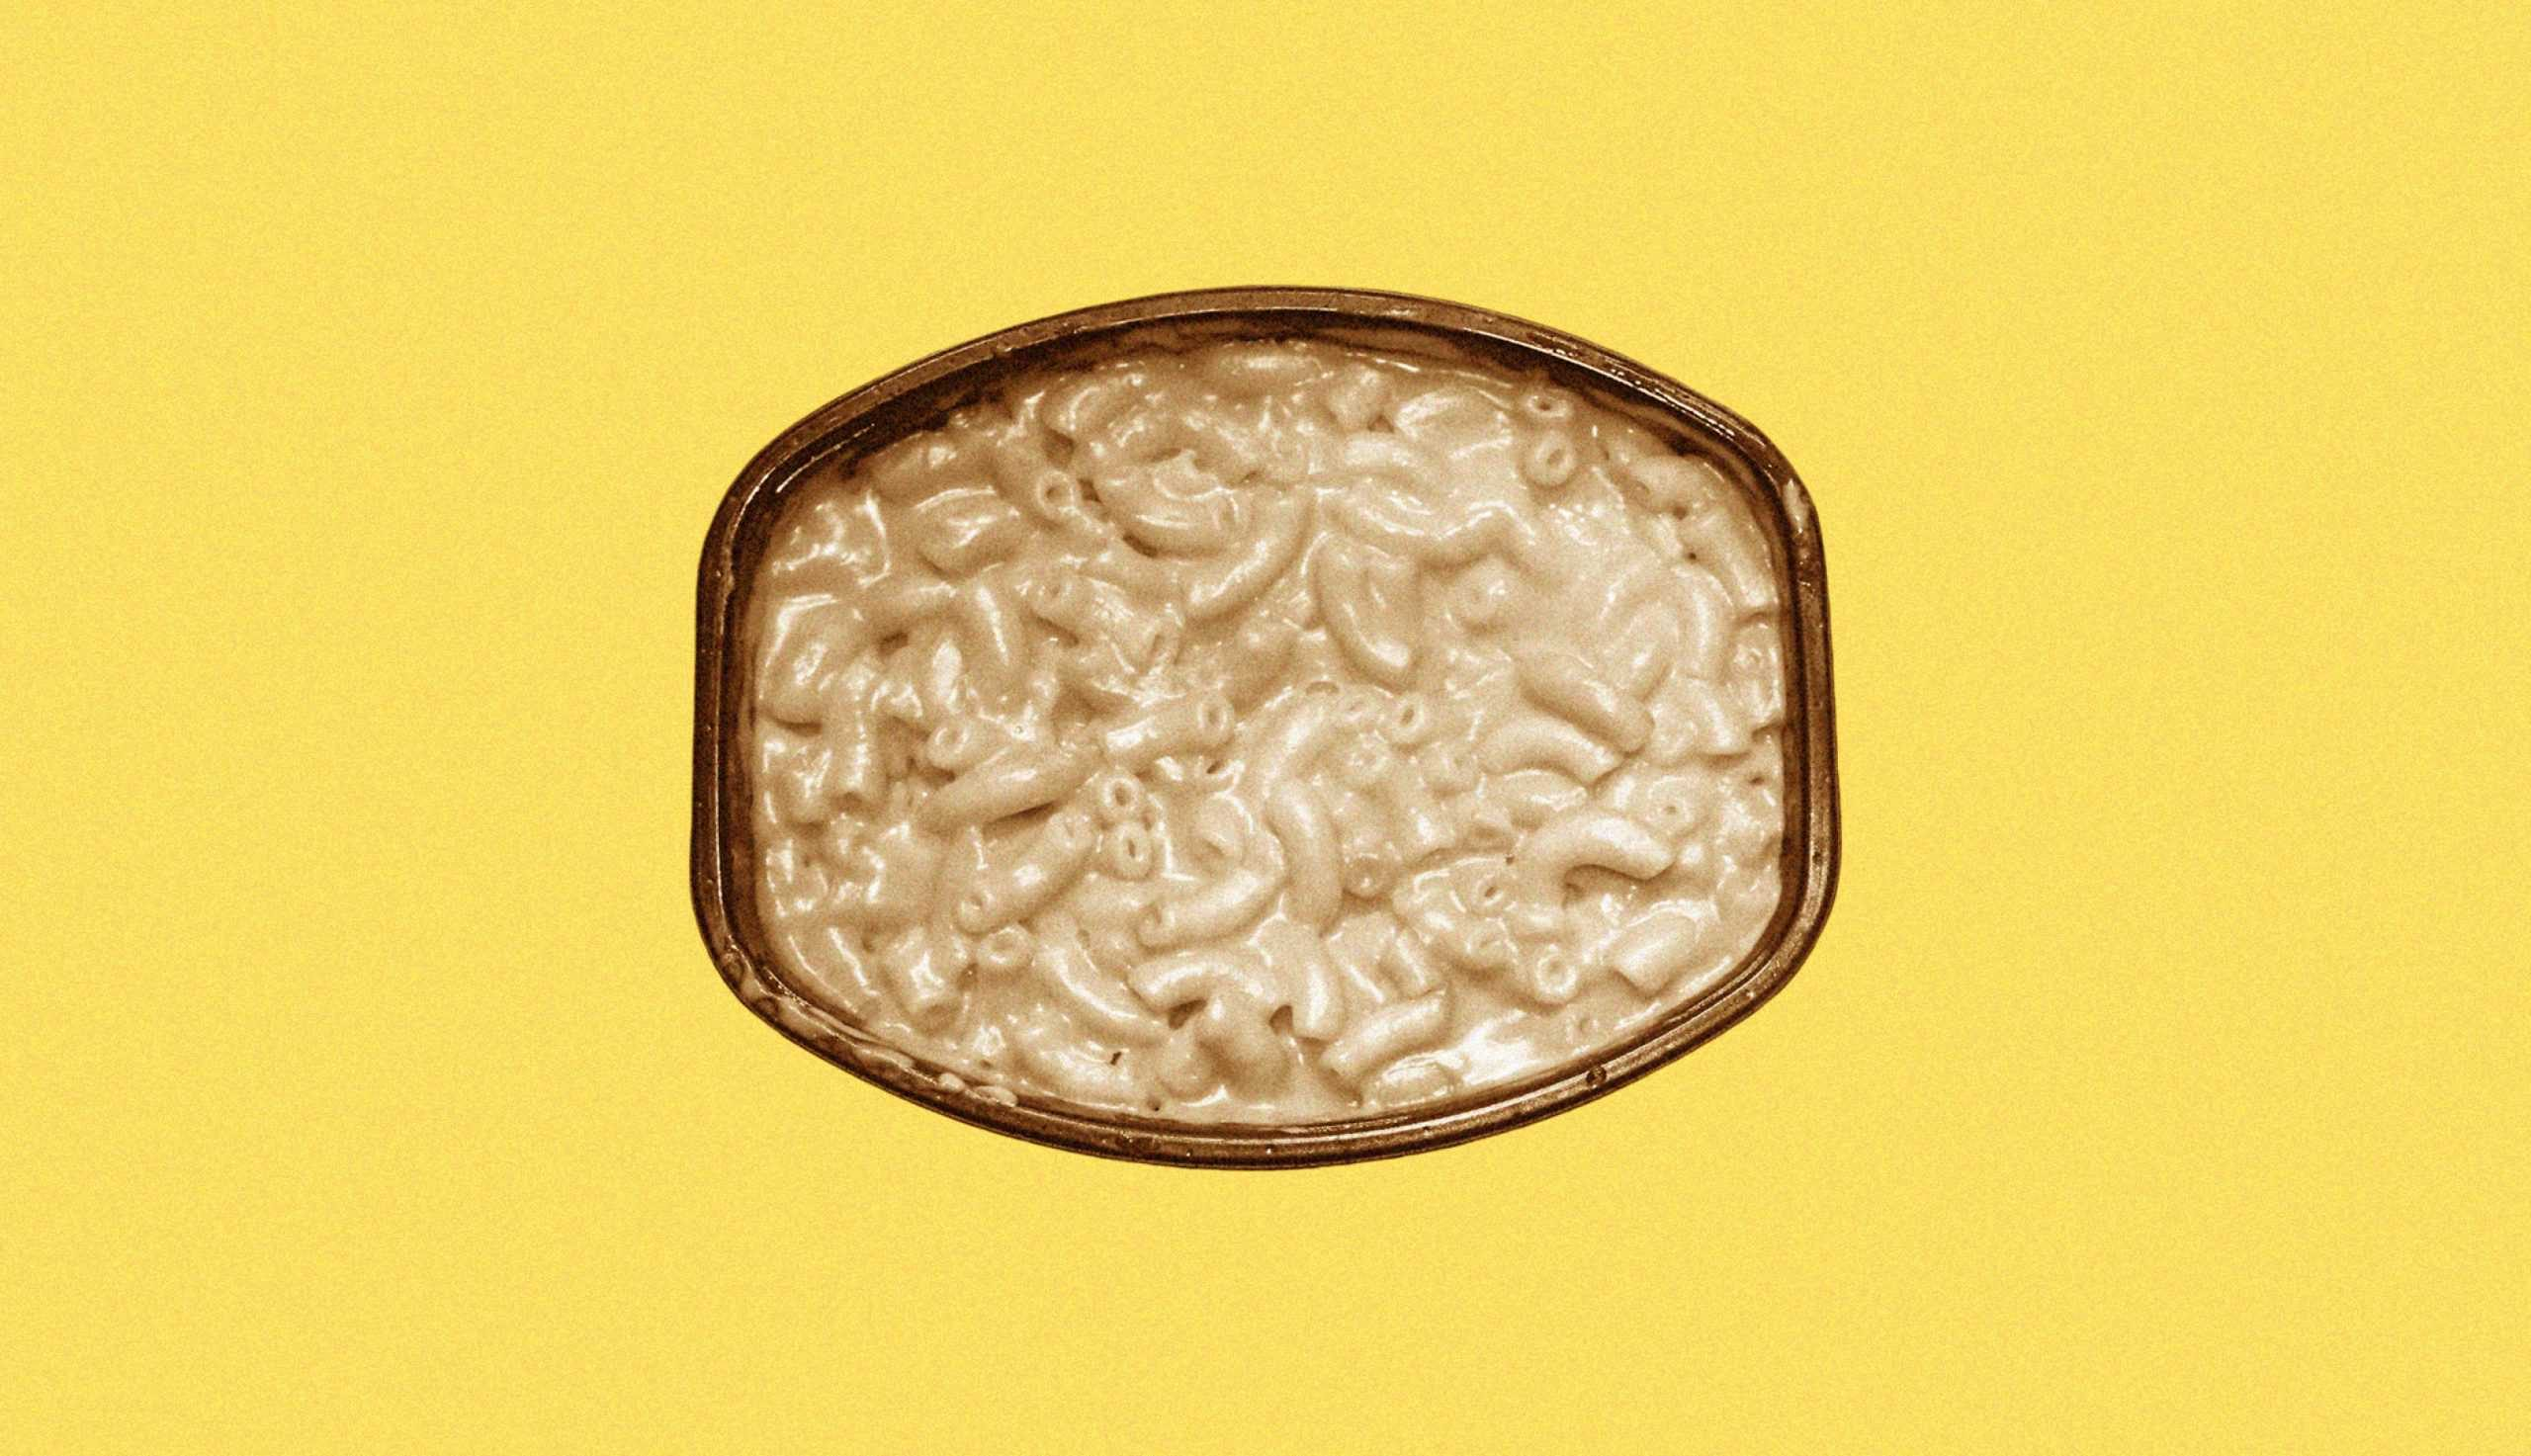 mac and cheese on yellow background.